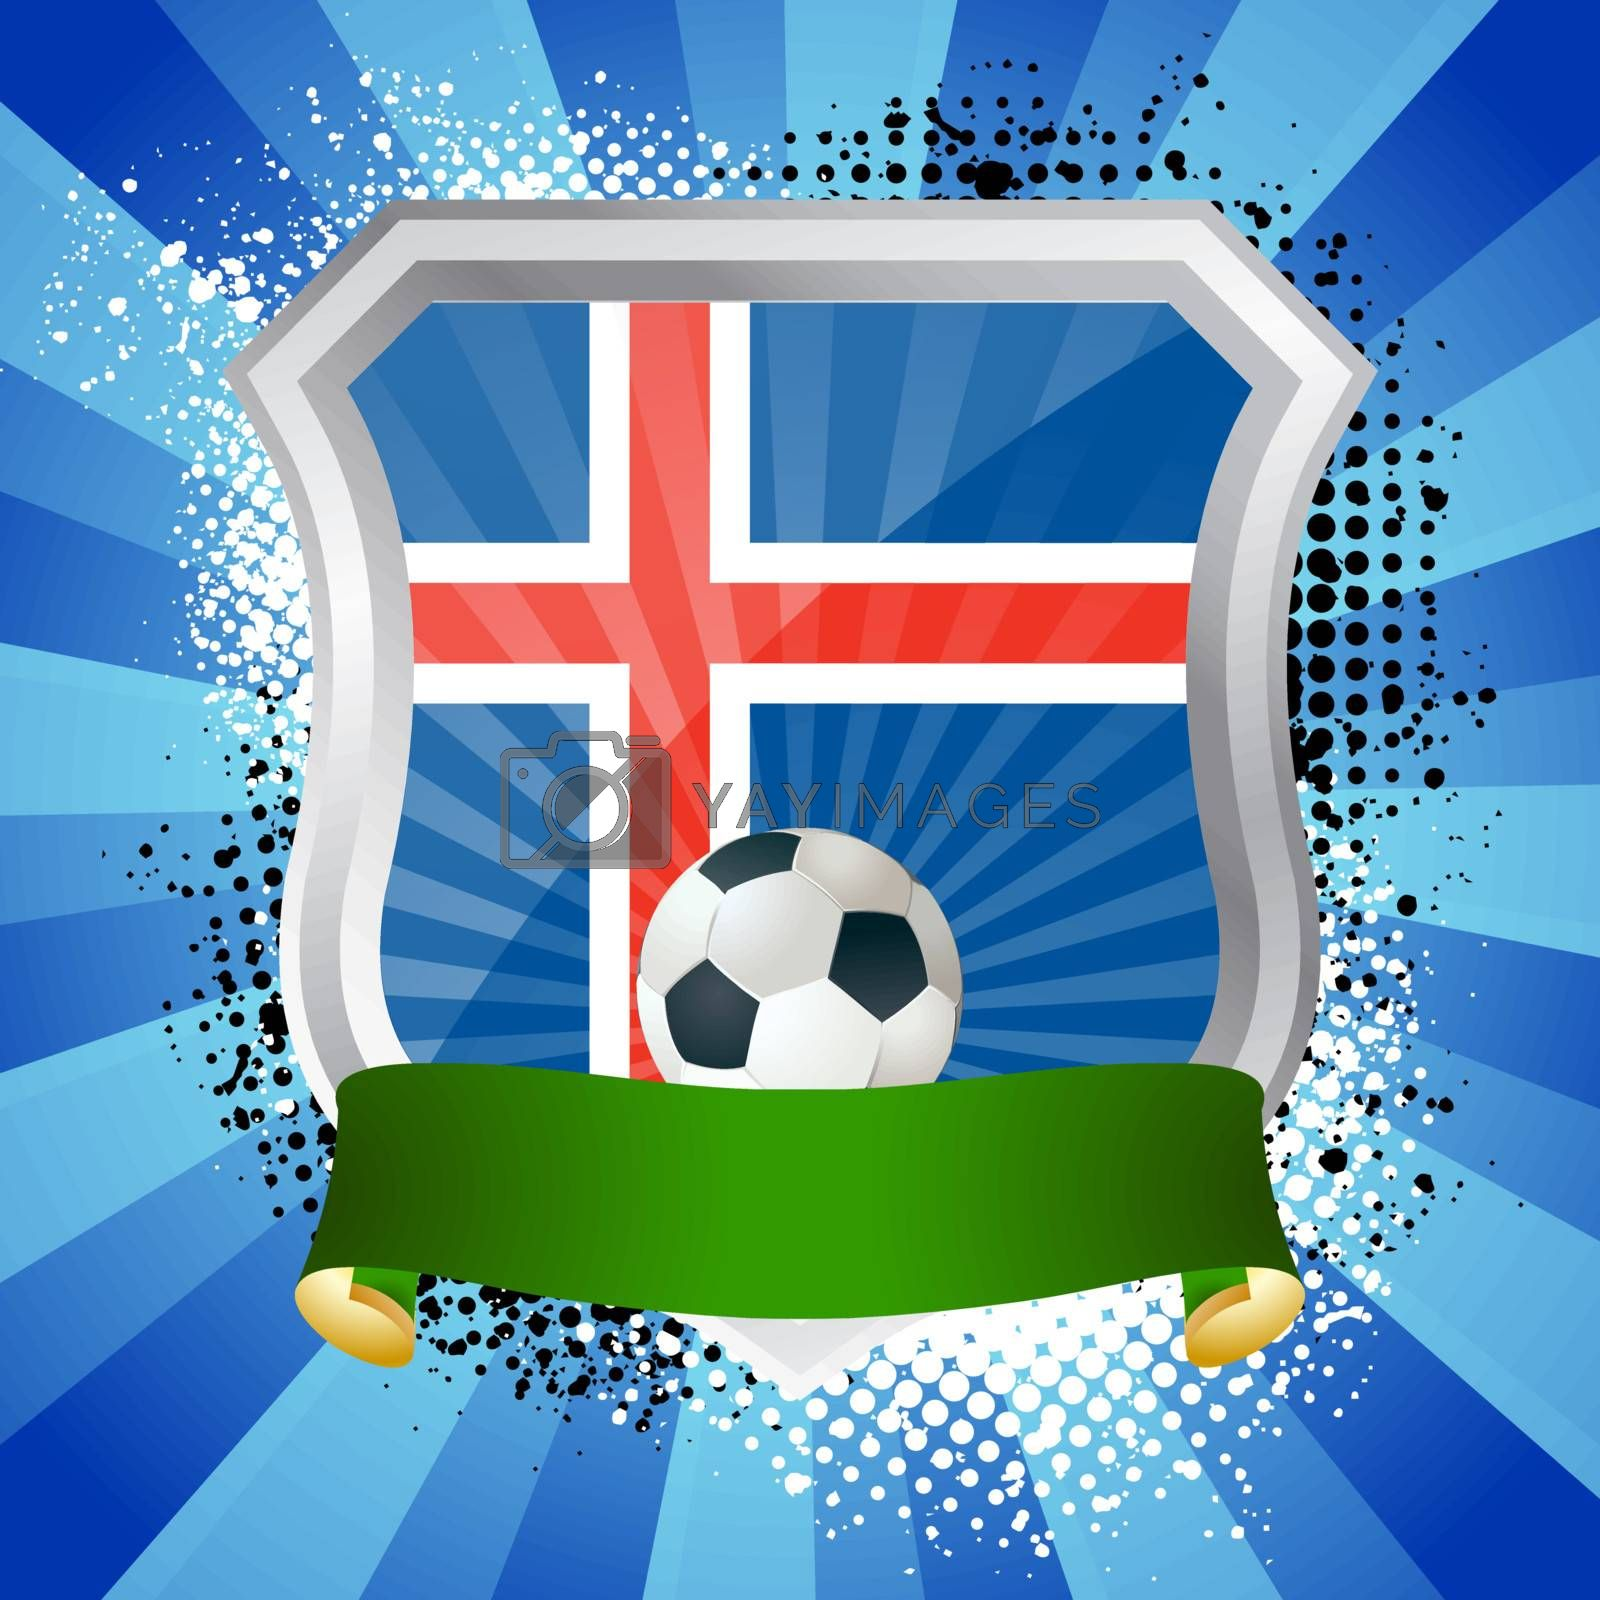 EPS 10. Shiny metal shield on bright background with flag of Iceland